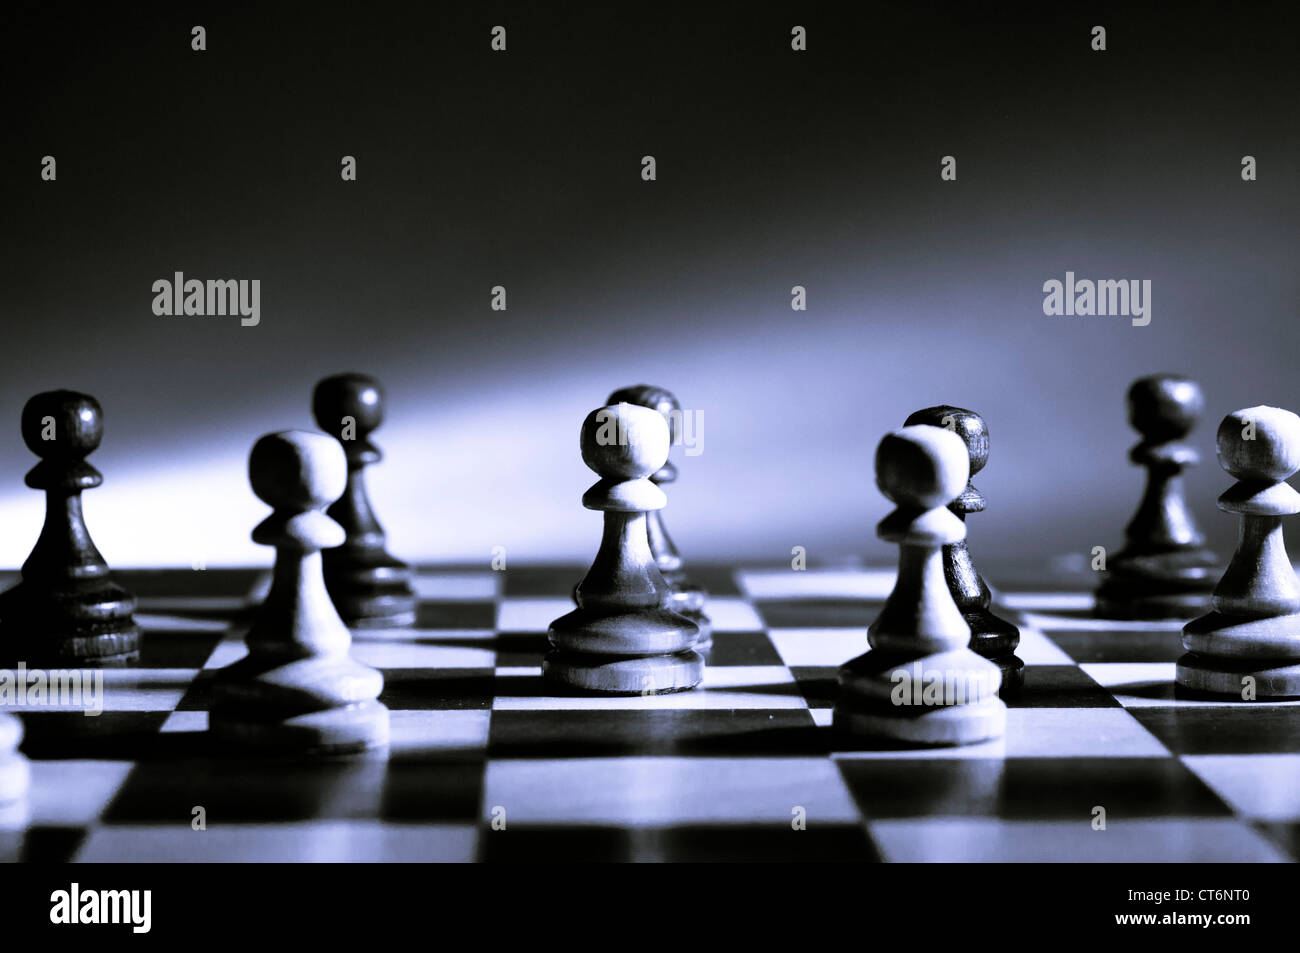 chess pawns on the chessboard - Stock Image